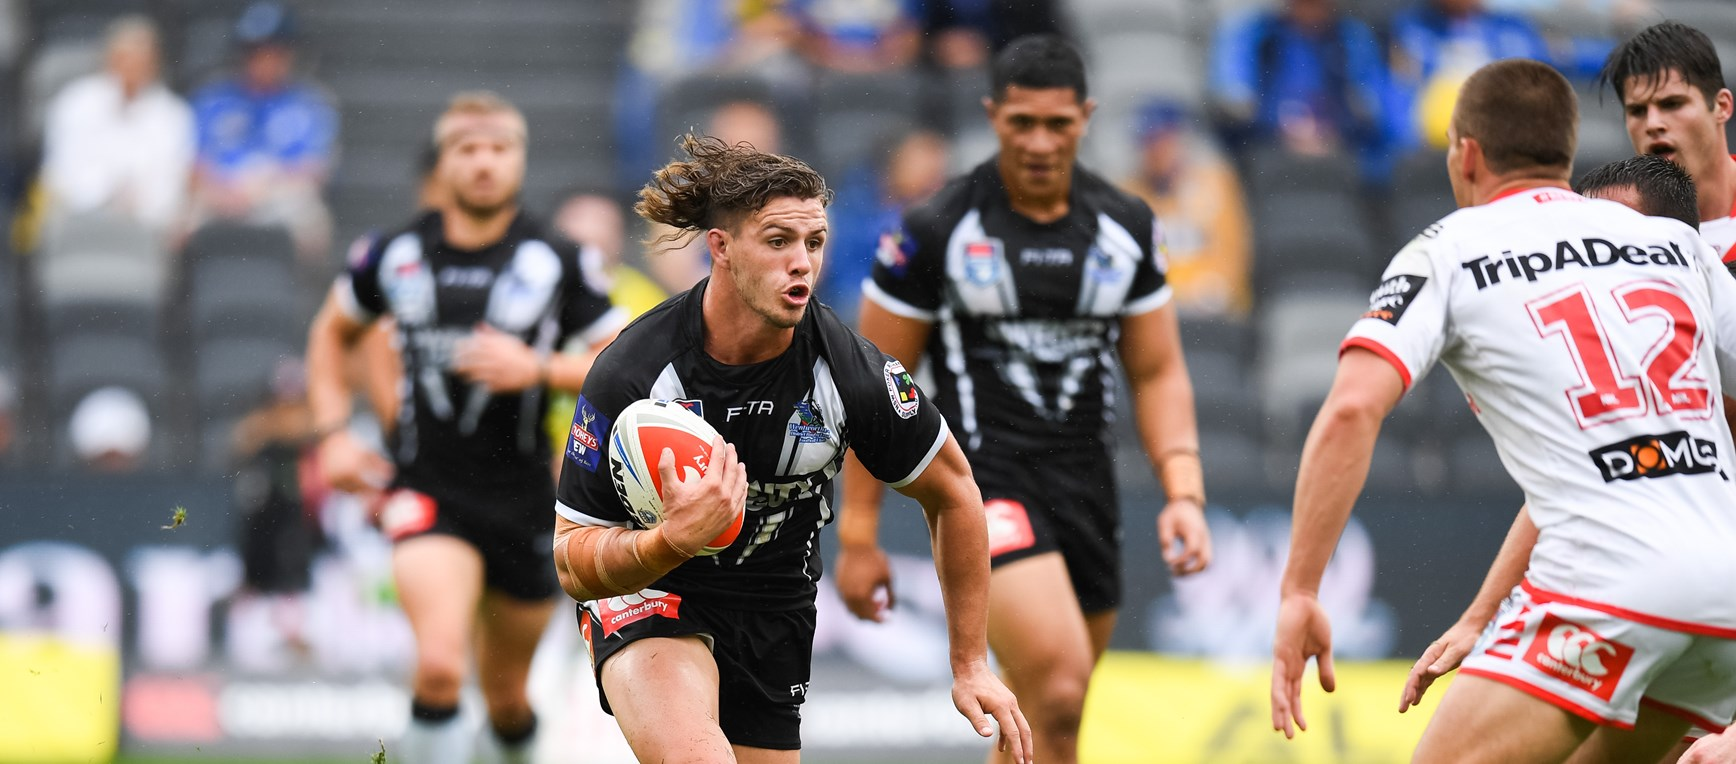 Magpies v Dragons Gallery